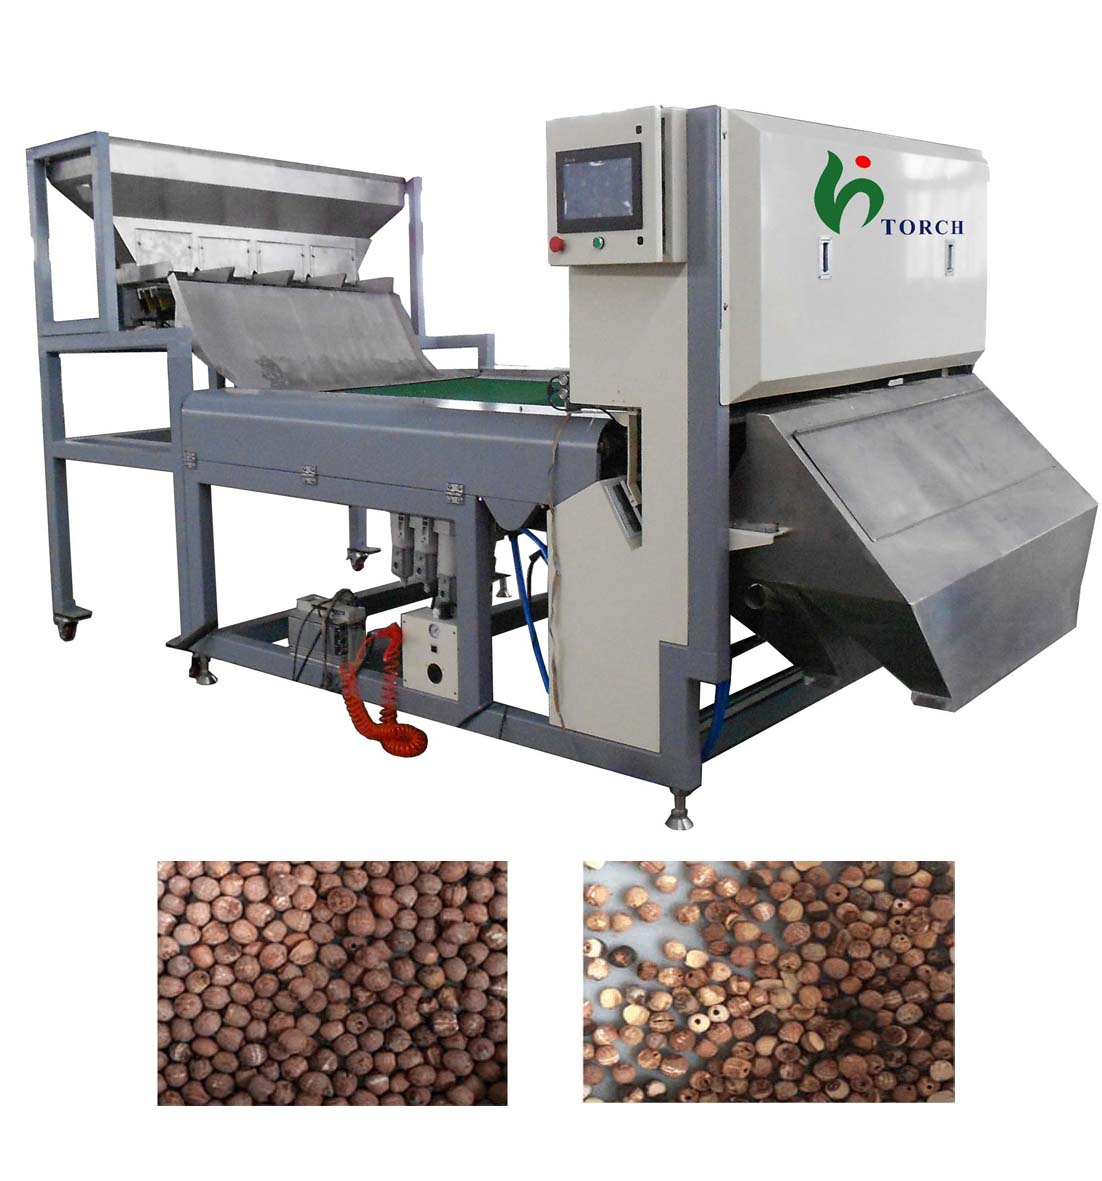 Chili CCD Color Sorter Machine